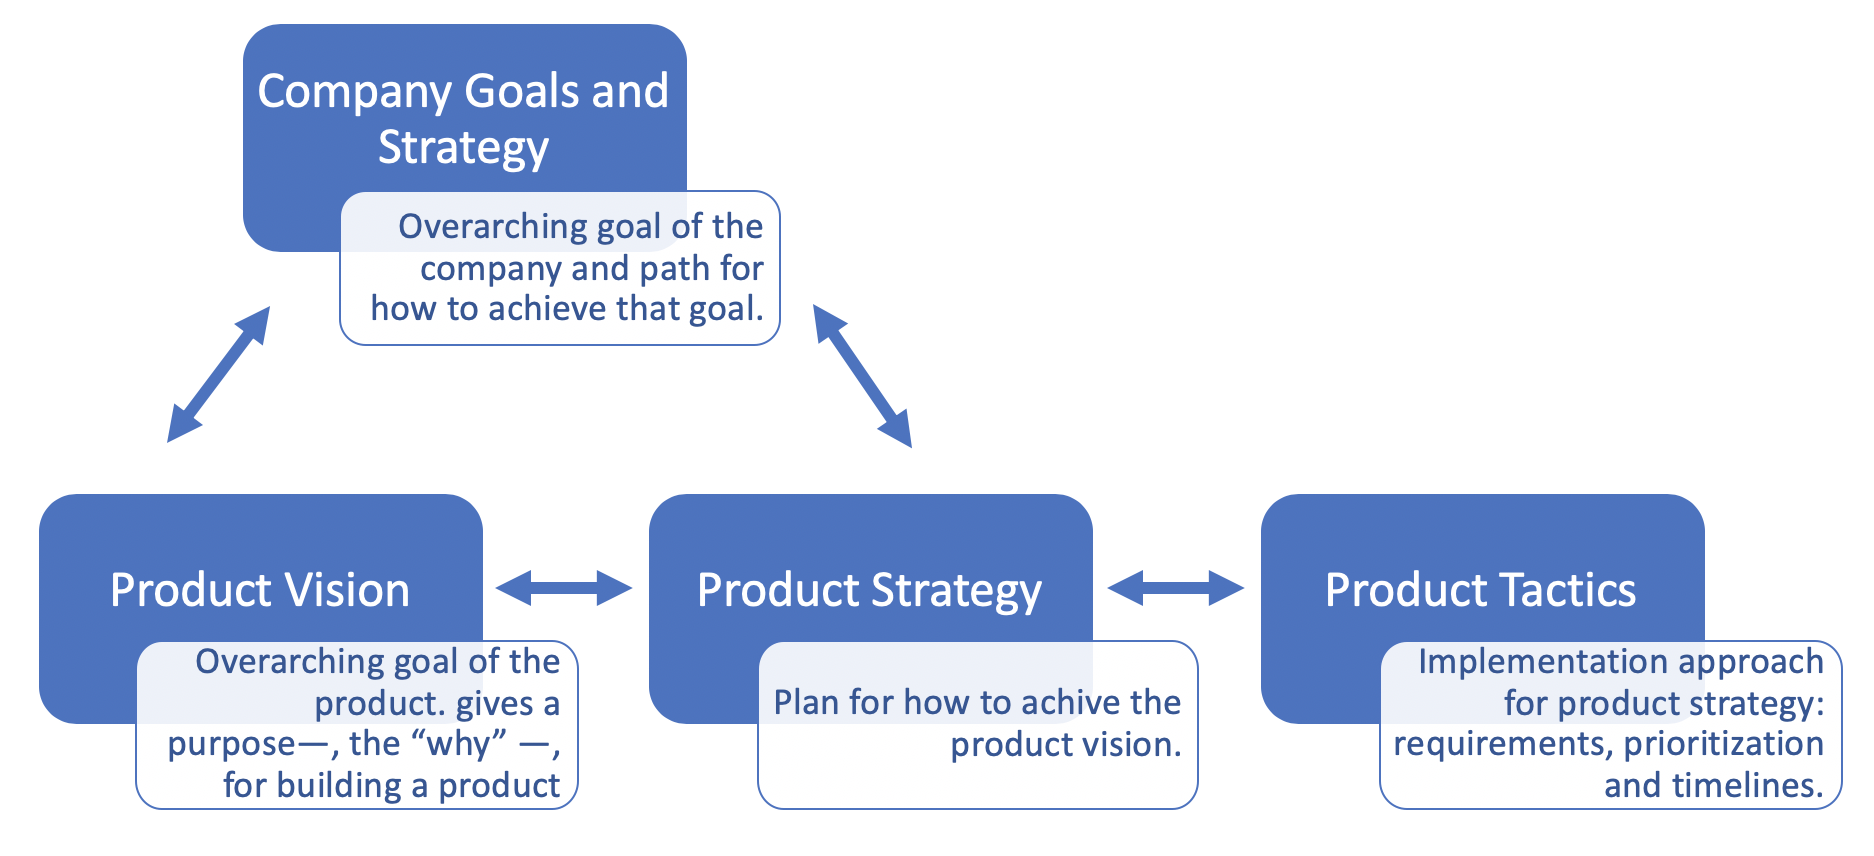 Vision, strategy and tactics